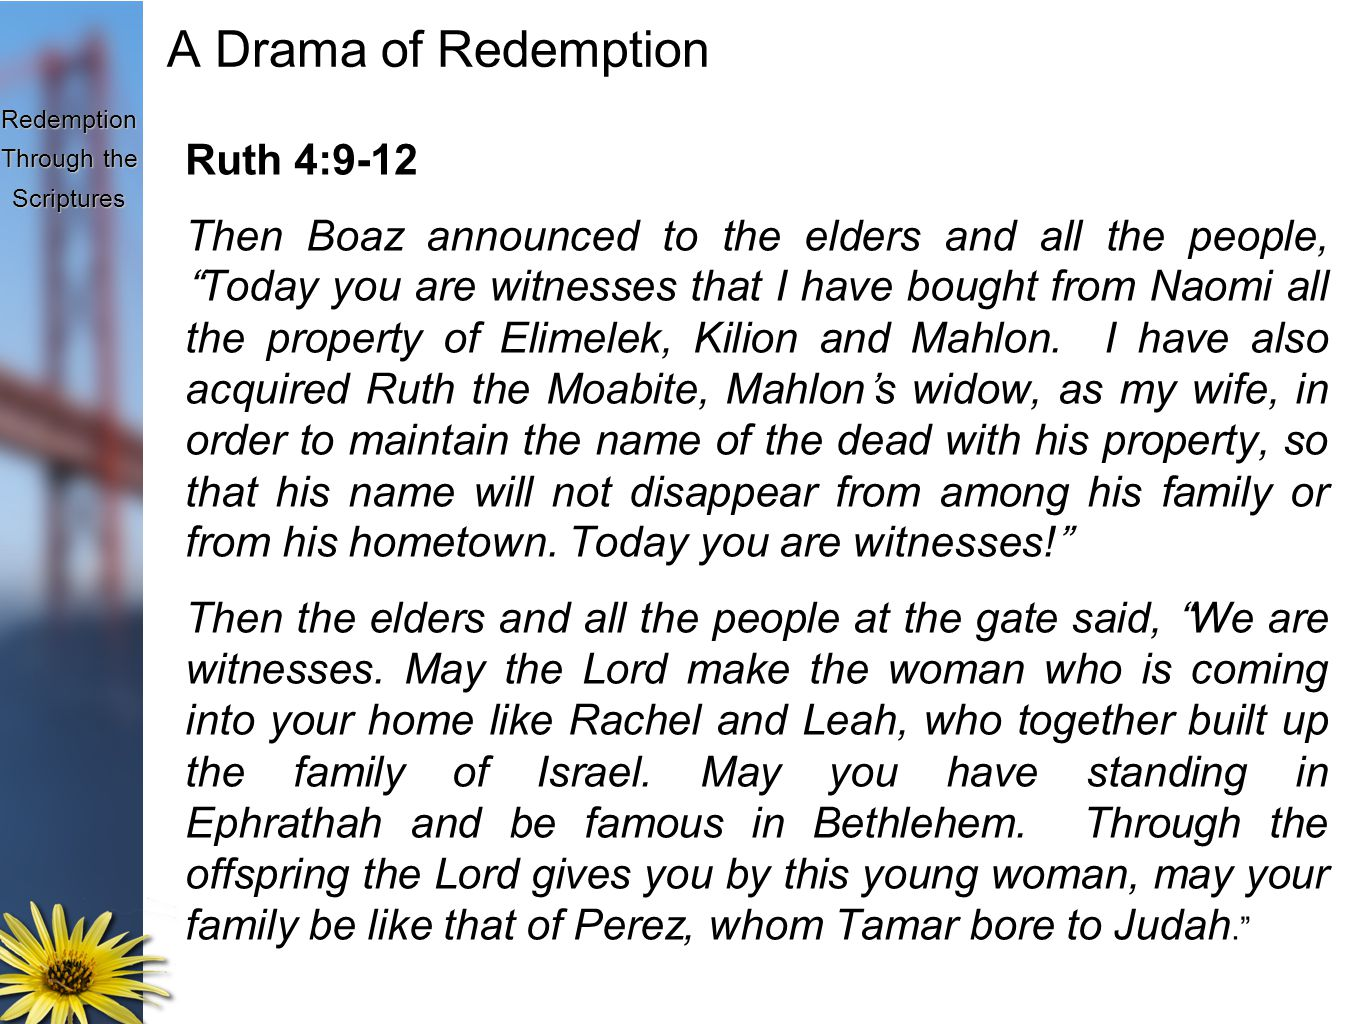 Redemption Through the Scriptures A Drama of Redemption Ruth 4:9-12 Then Boaz announced to the elders and all the people, Today you are witnesses that I have bought from Naomi all the property of Elimelek, Kilion and Mahlon.